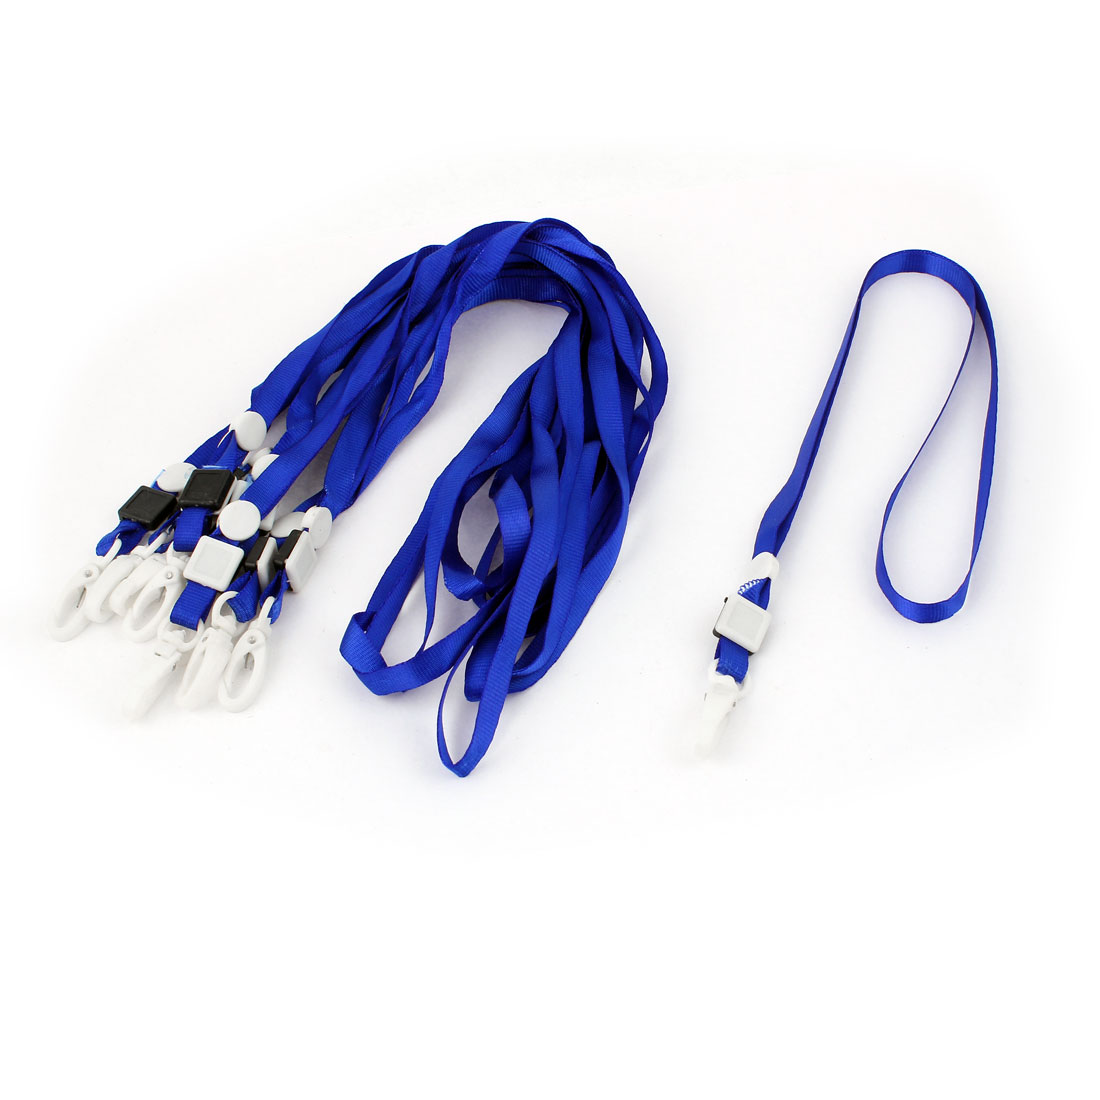 ID Card Name Tag Pass Badge Holder Plastic Clip Neck Strap Lanyard Blue 10pcs